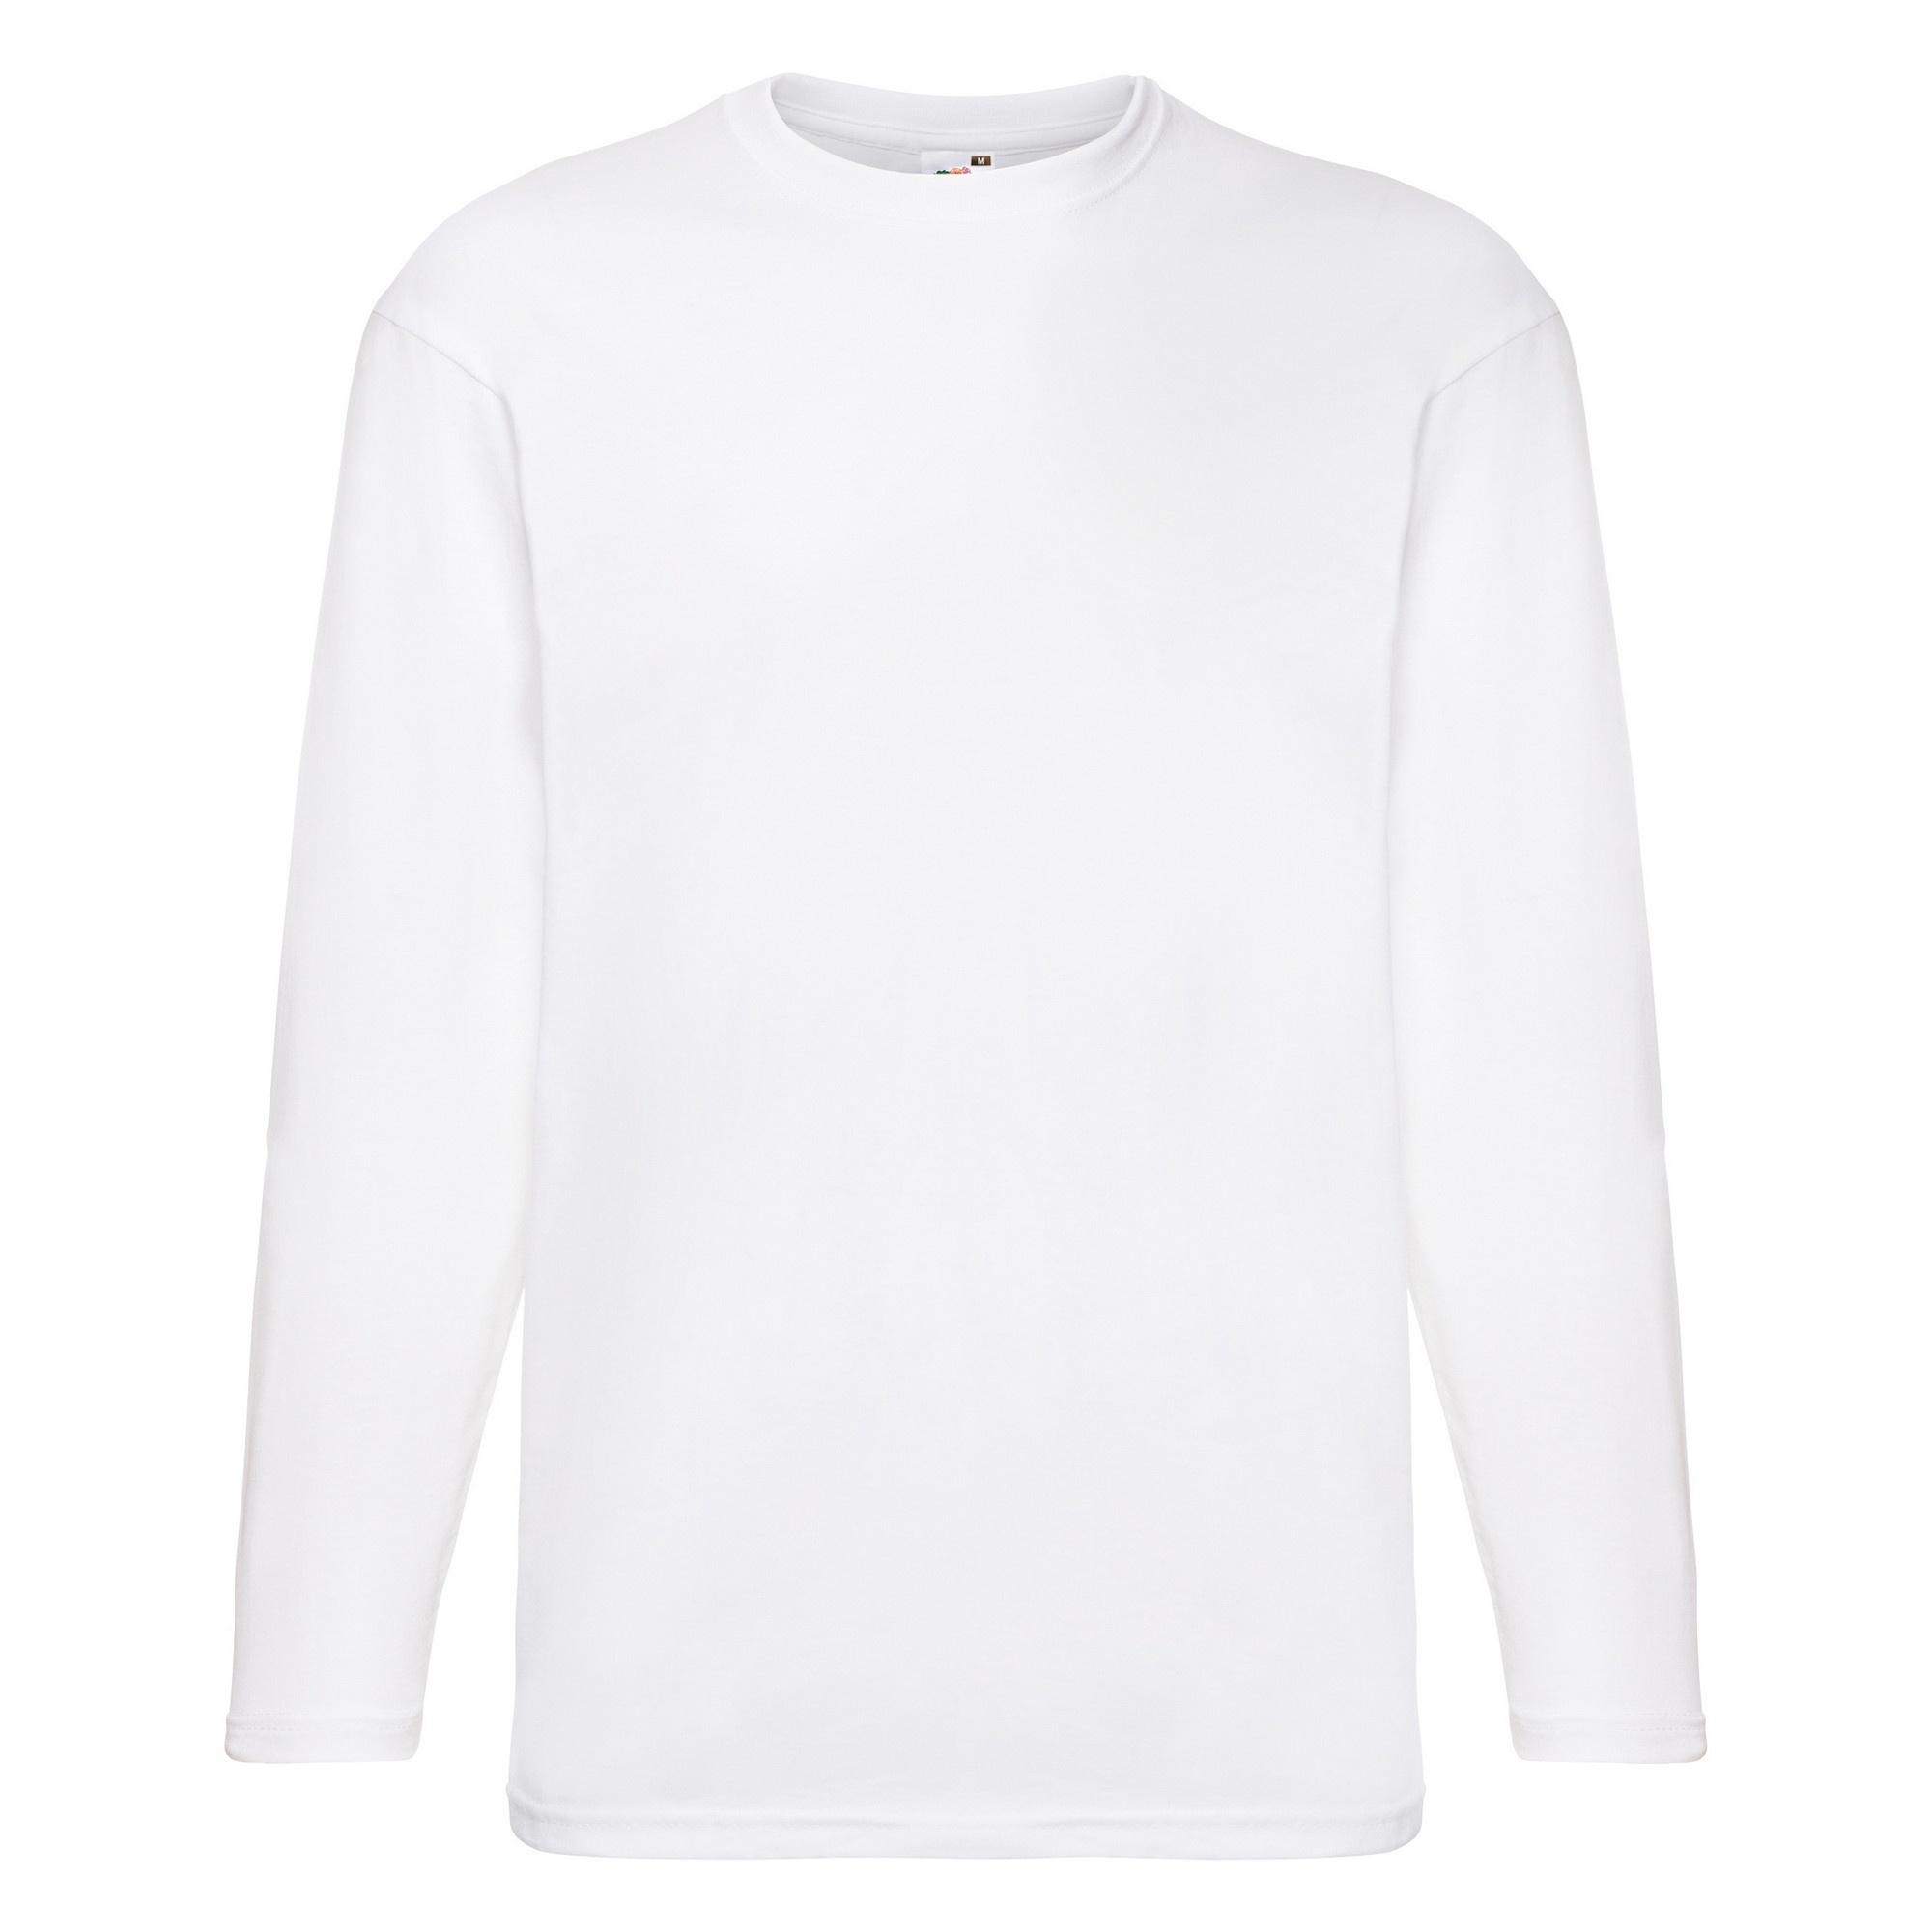 Fruit of the loom mens valueweight crew neck long sleeve t for Mens crew neck tee shirts